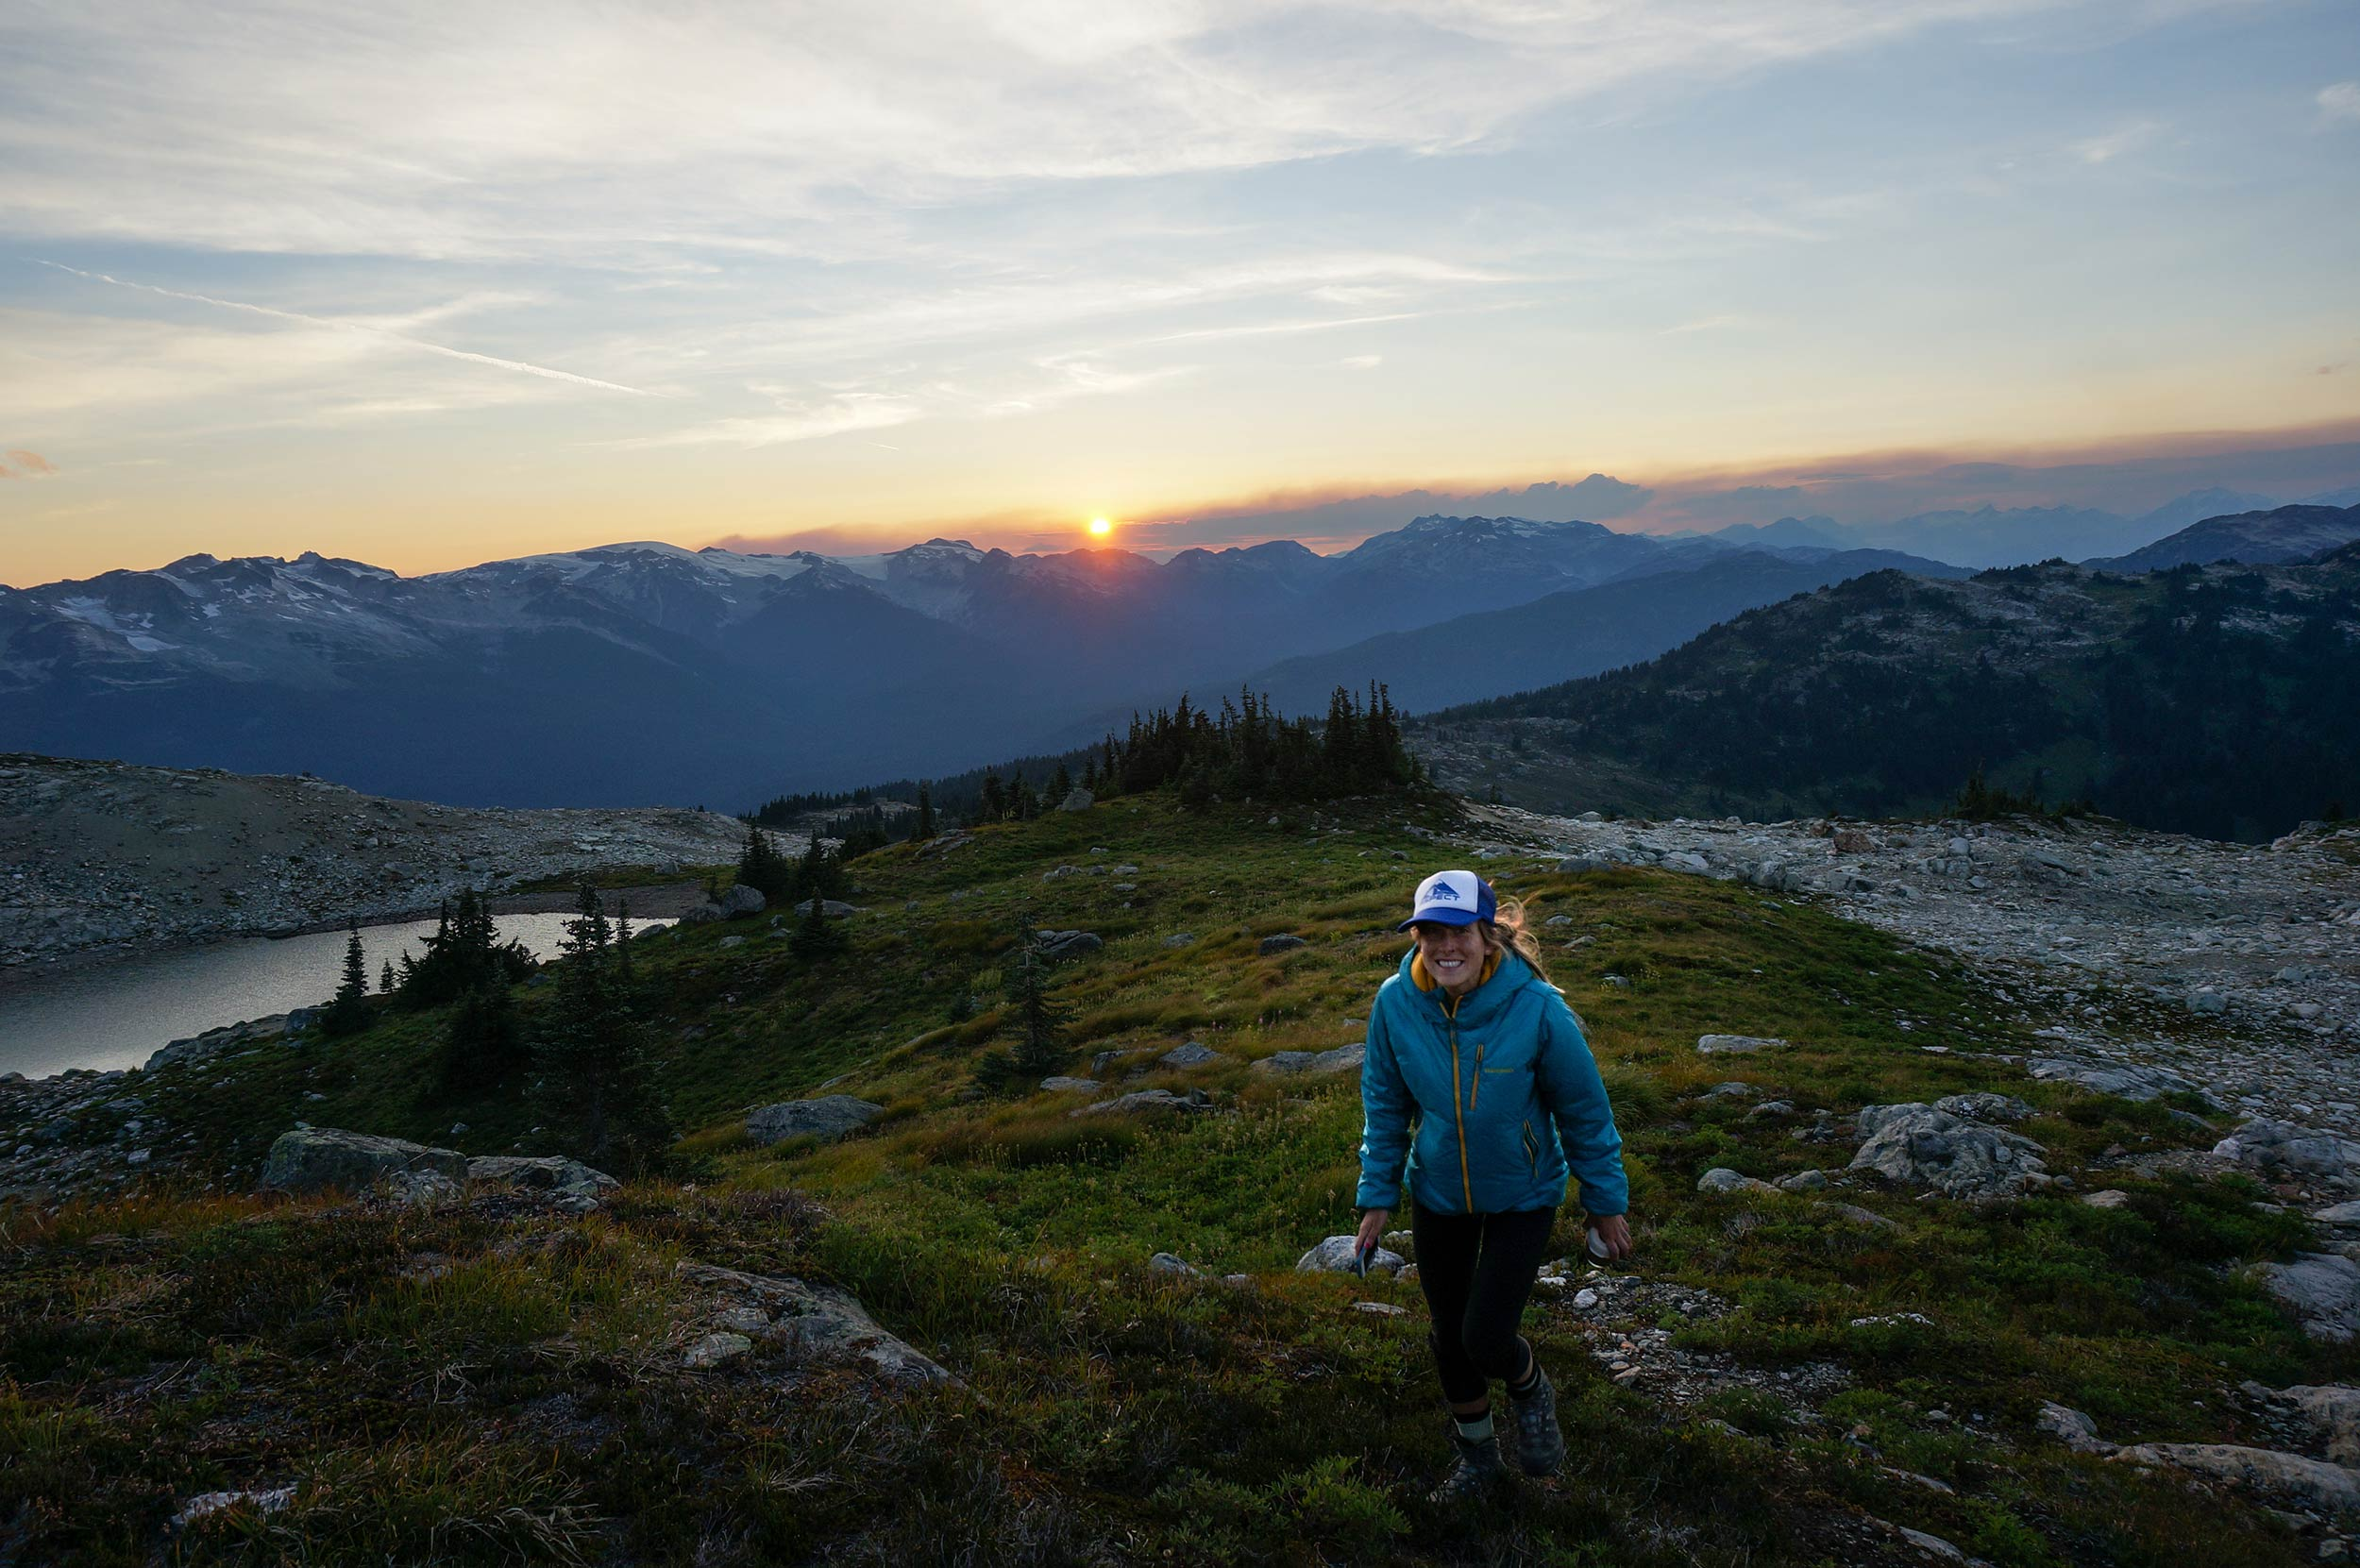 sproatt_alpine_trail_sunset_candice_walking.jpg